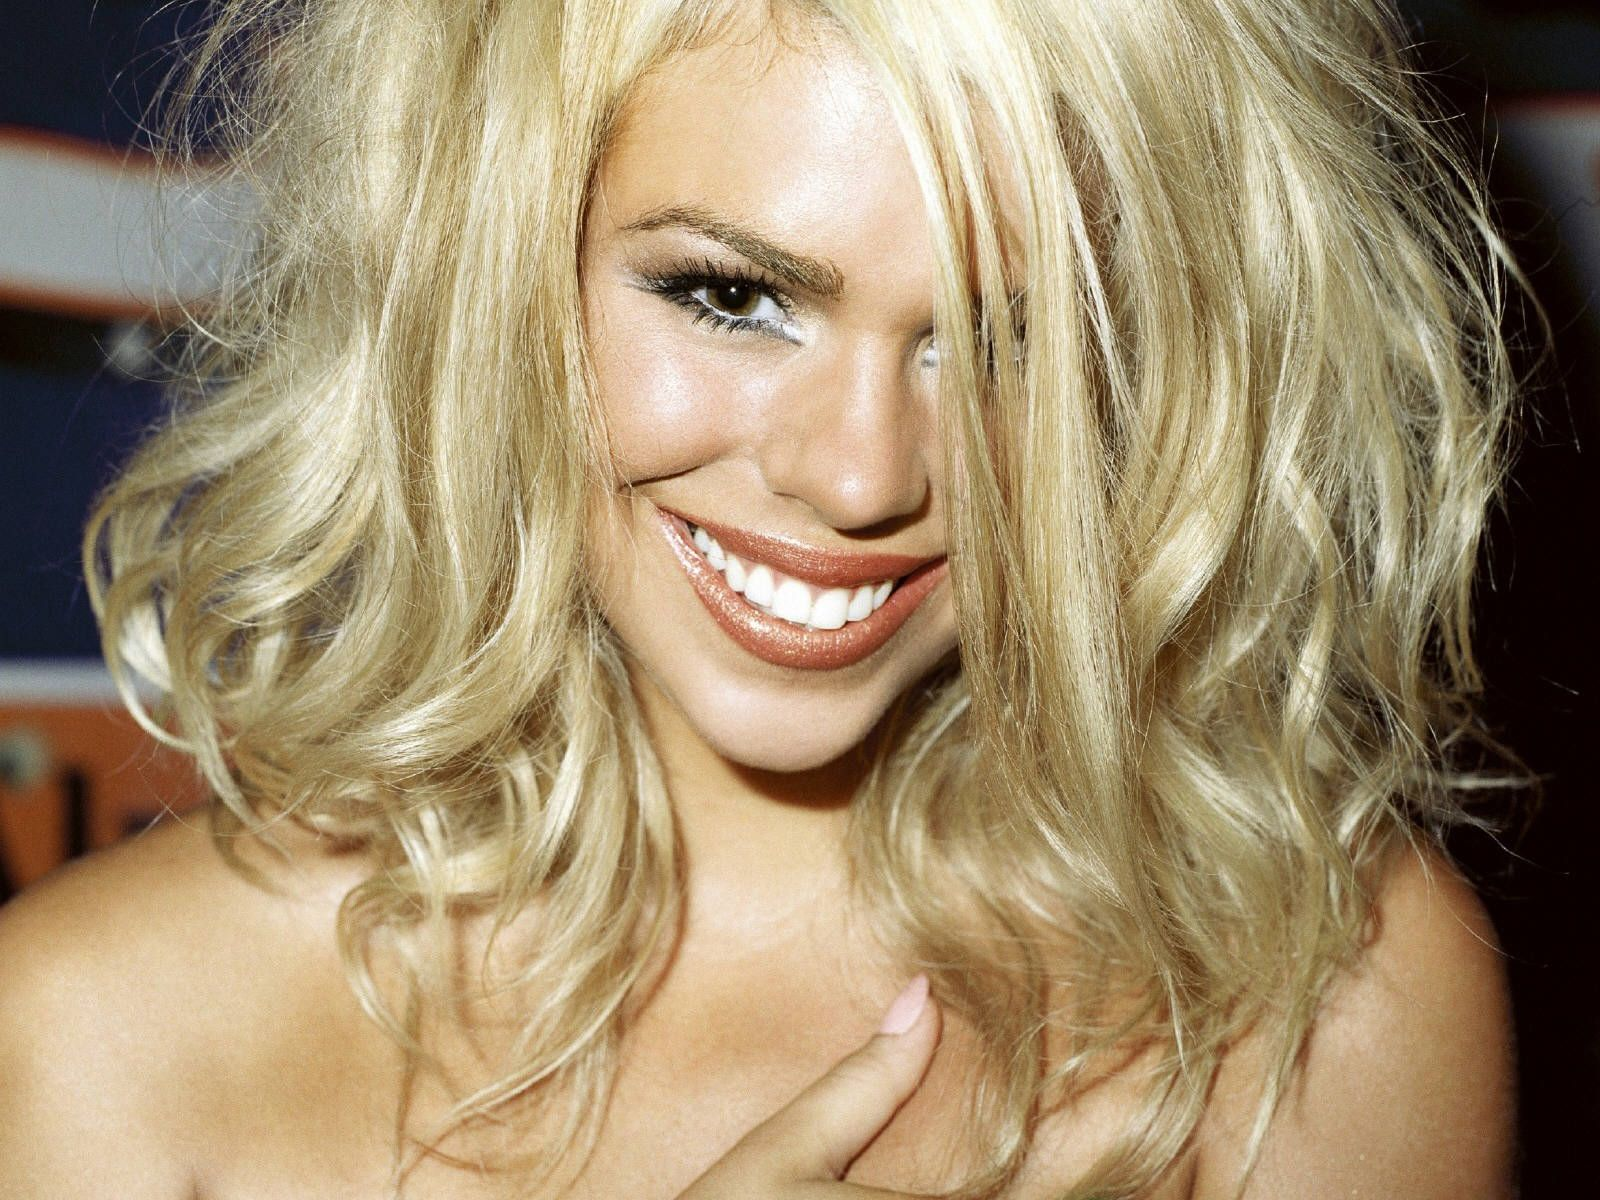 Billie Piper is so hot she could weld with that smile